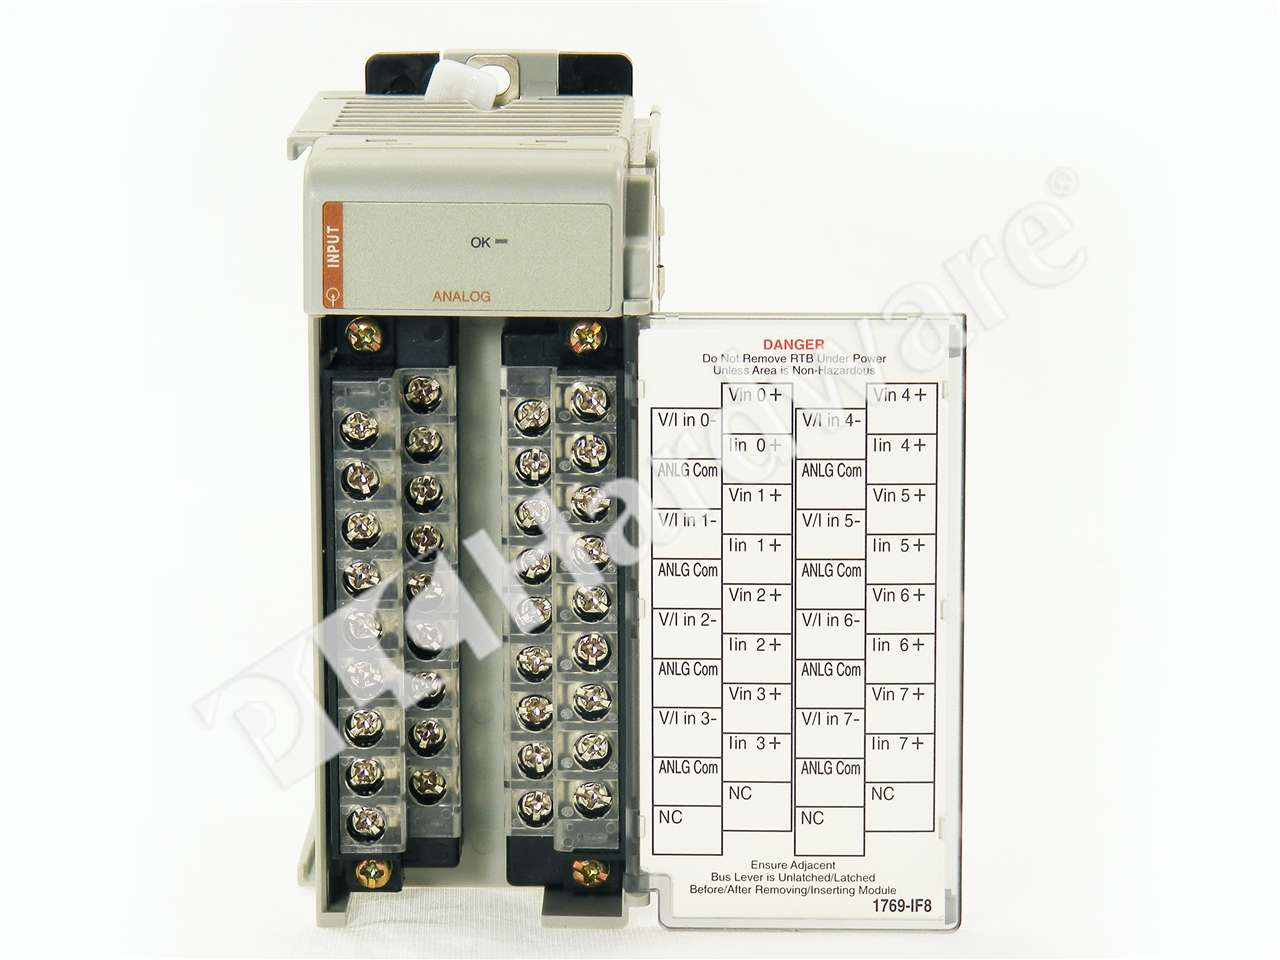 RA 1769 IF8 a UPP_3_10_06_30_18_21_b plc hardware allen bradley 1769 if8 series a, new factory sealed 1769-ob32 wiring diagram at crackthecode.co